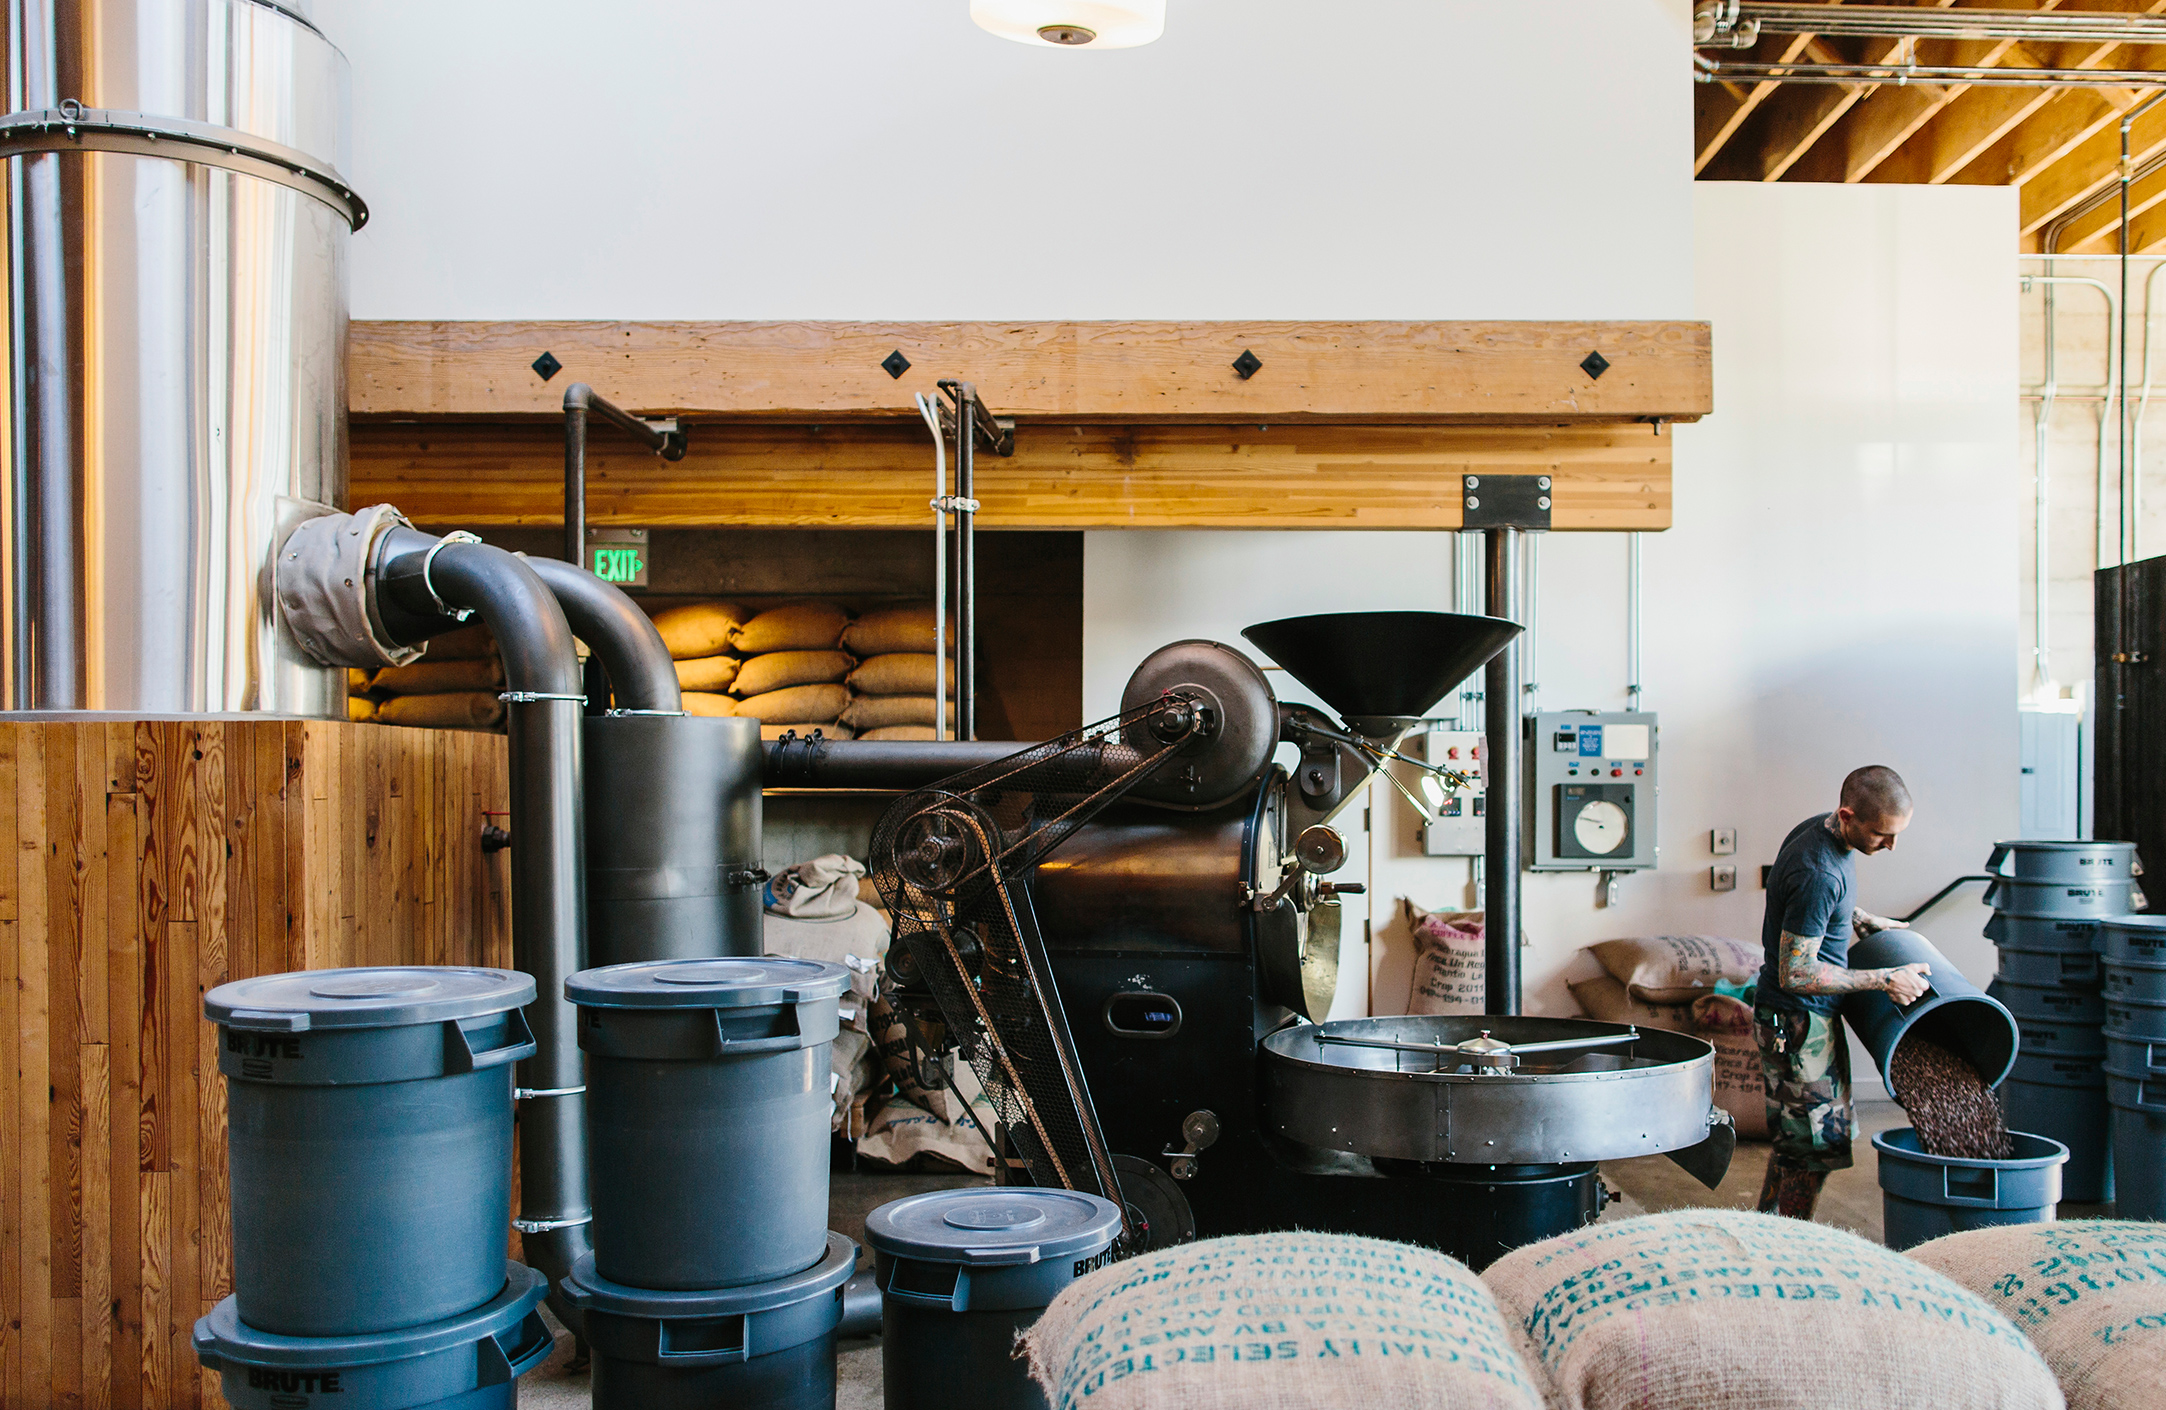 The Rise of Small Producers - 15th May 2019Smaller business' ability to drive growth through a people-first strategy shows that in the scheme of things size doesn't matter, but people do.